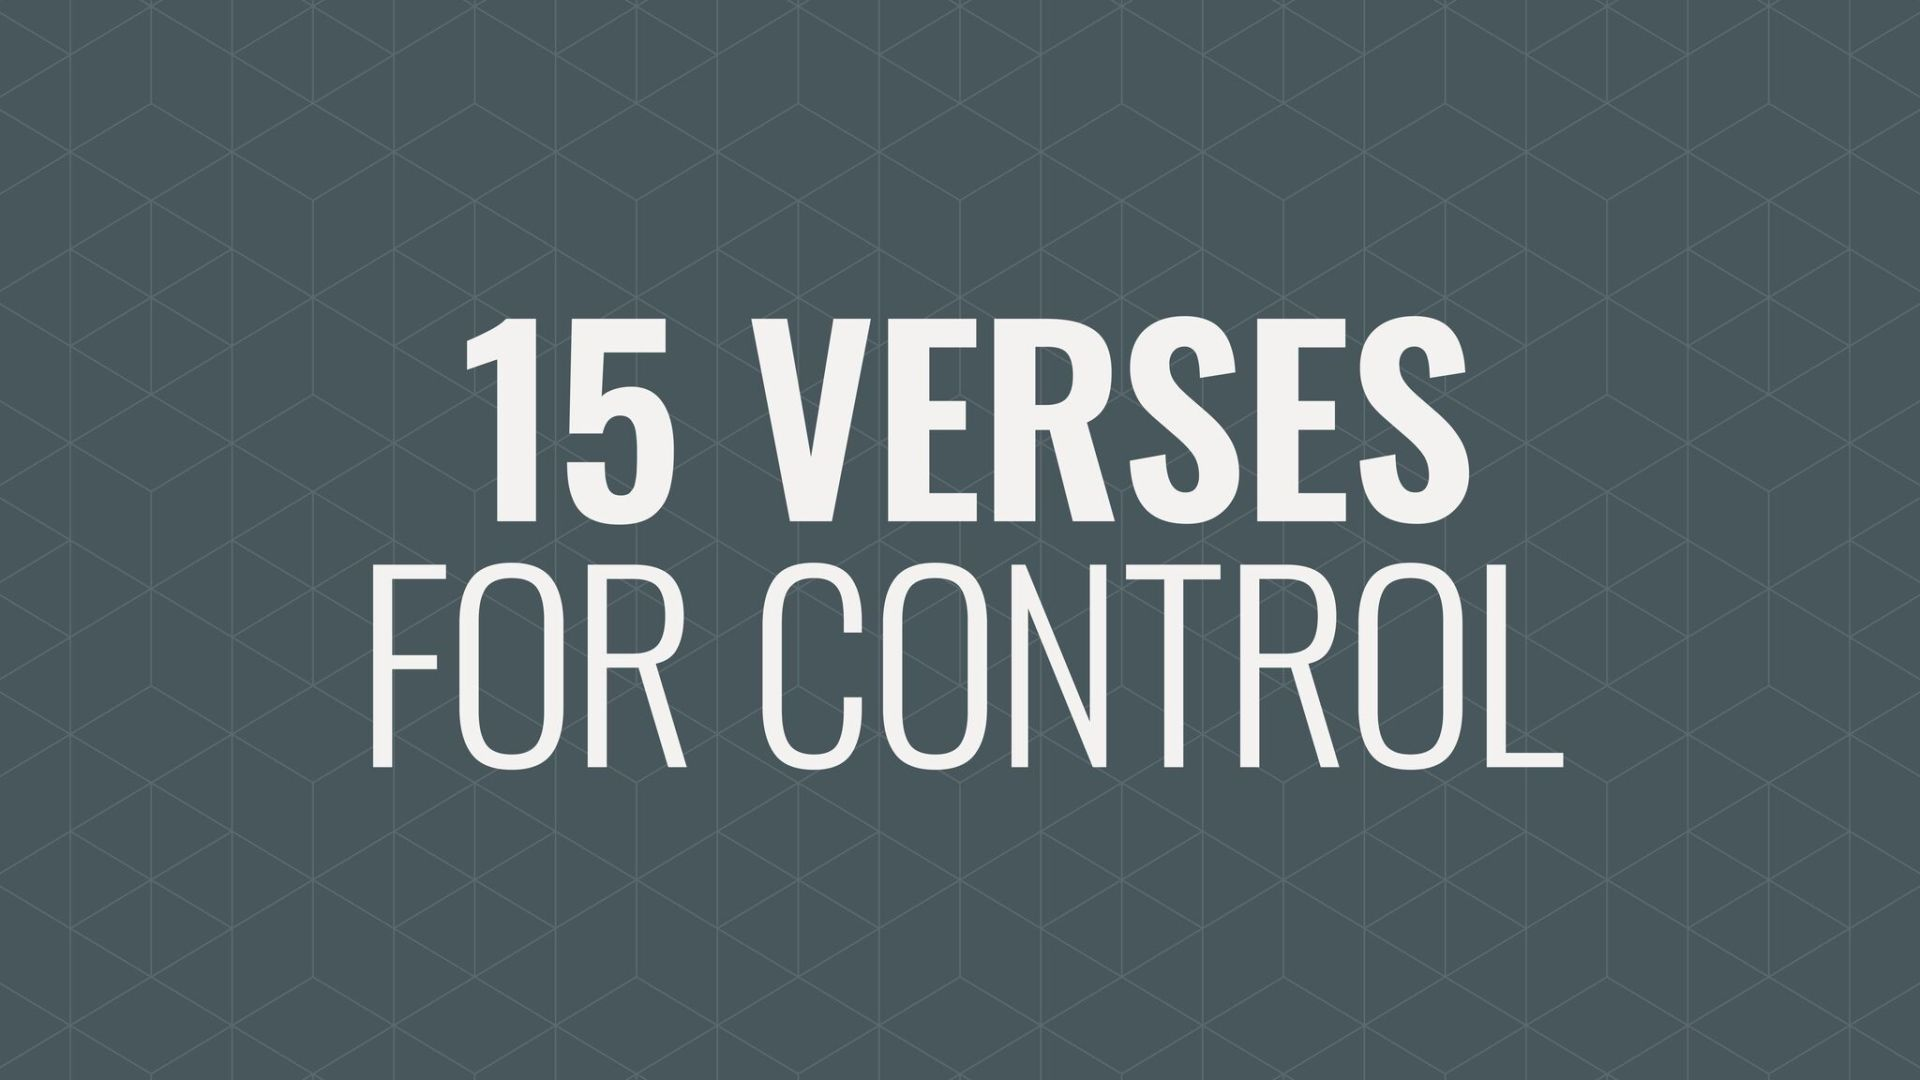 Struggling with Control: 15 Verses to Help Hero Image